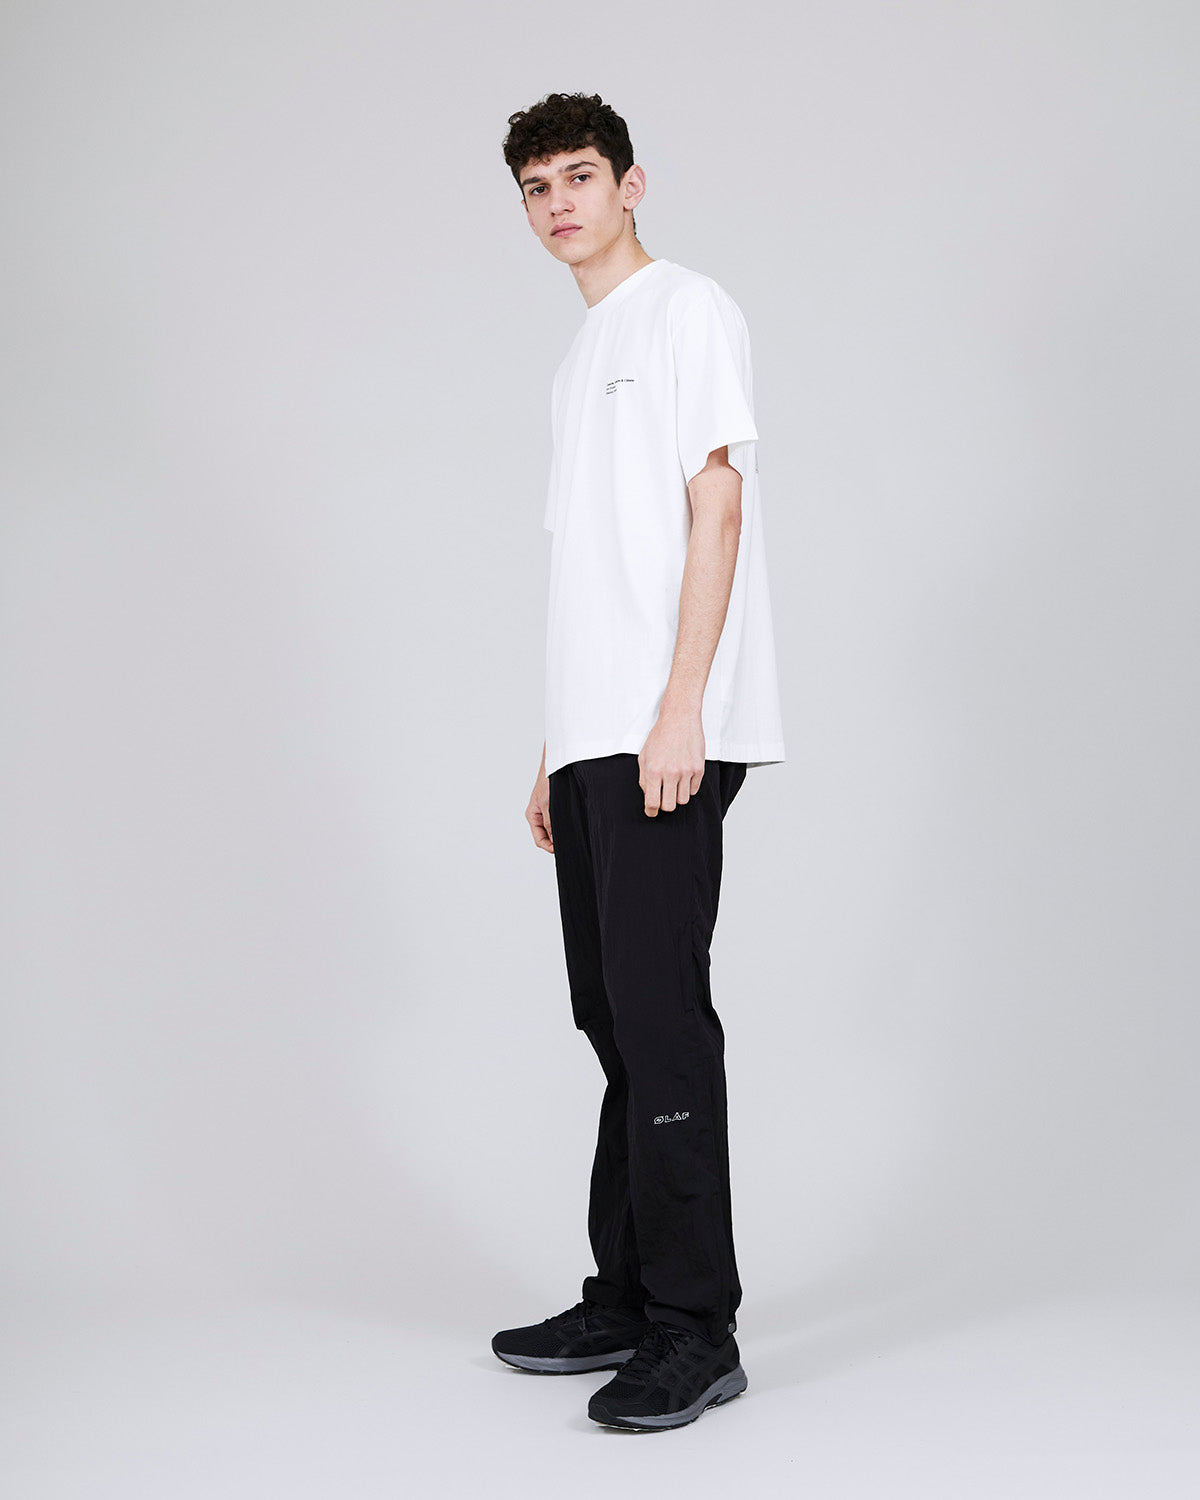 ØLÅF x Halal T - Jane Stockdale White, Portuguese fabric, 100% cotton (220 grams/sqm), Post wash, Fine ribbed collar, Made in Portugal